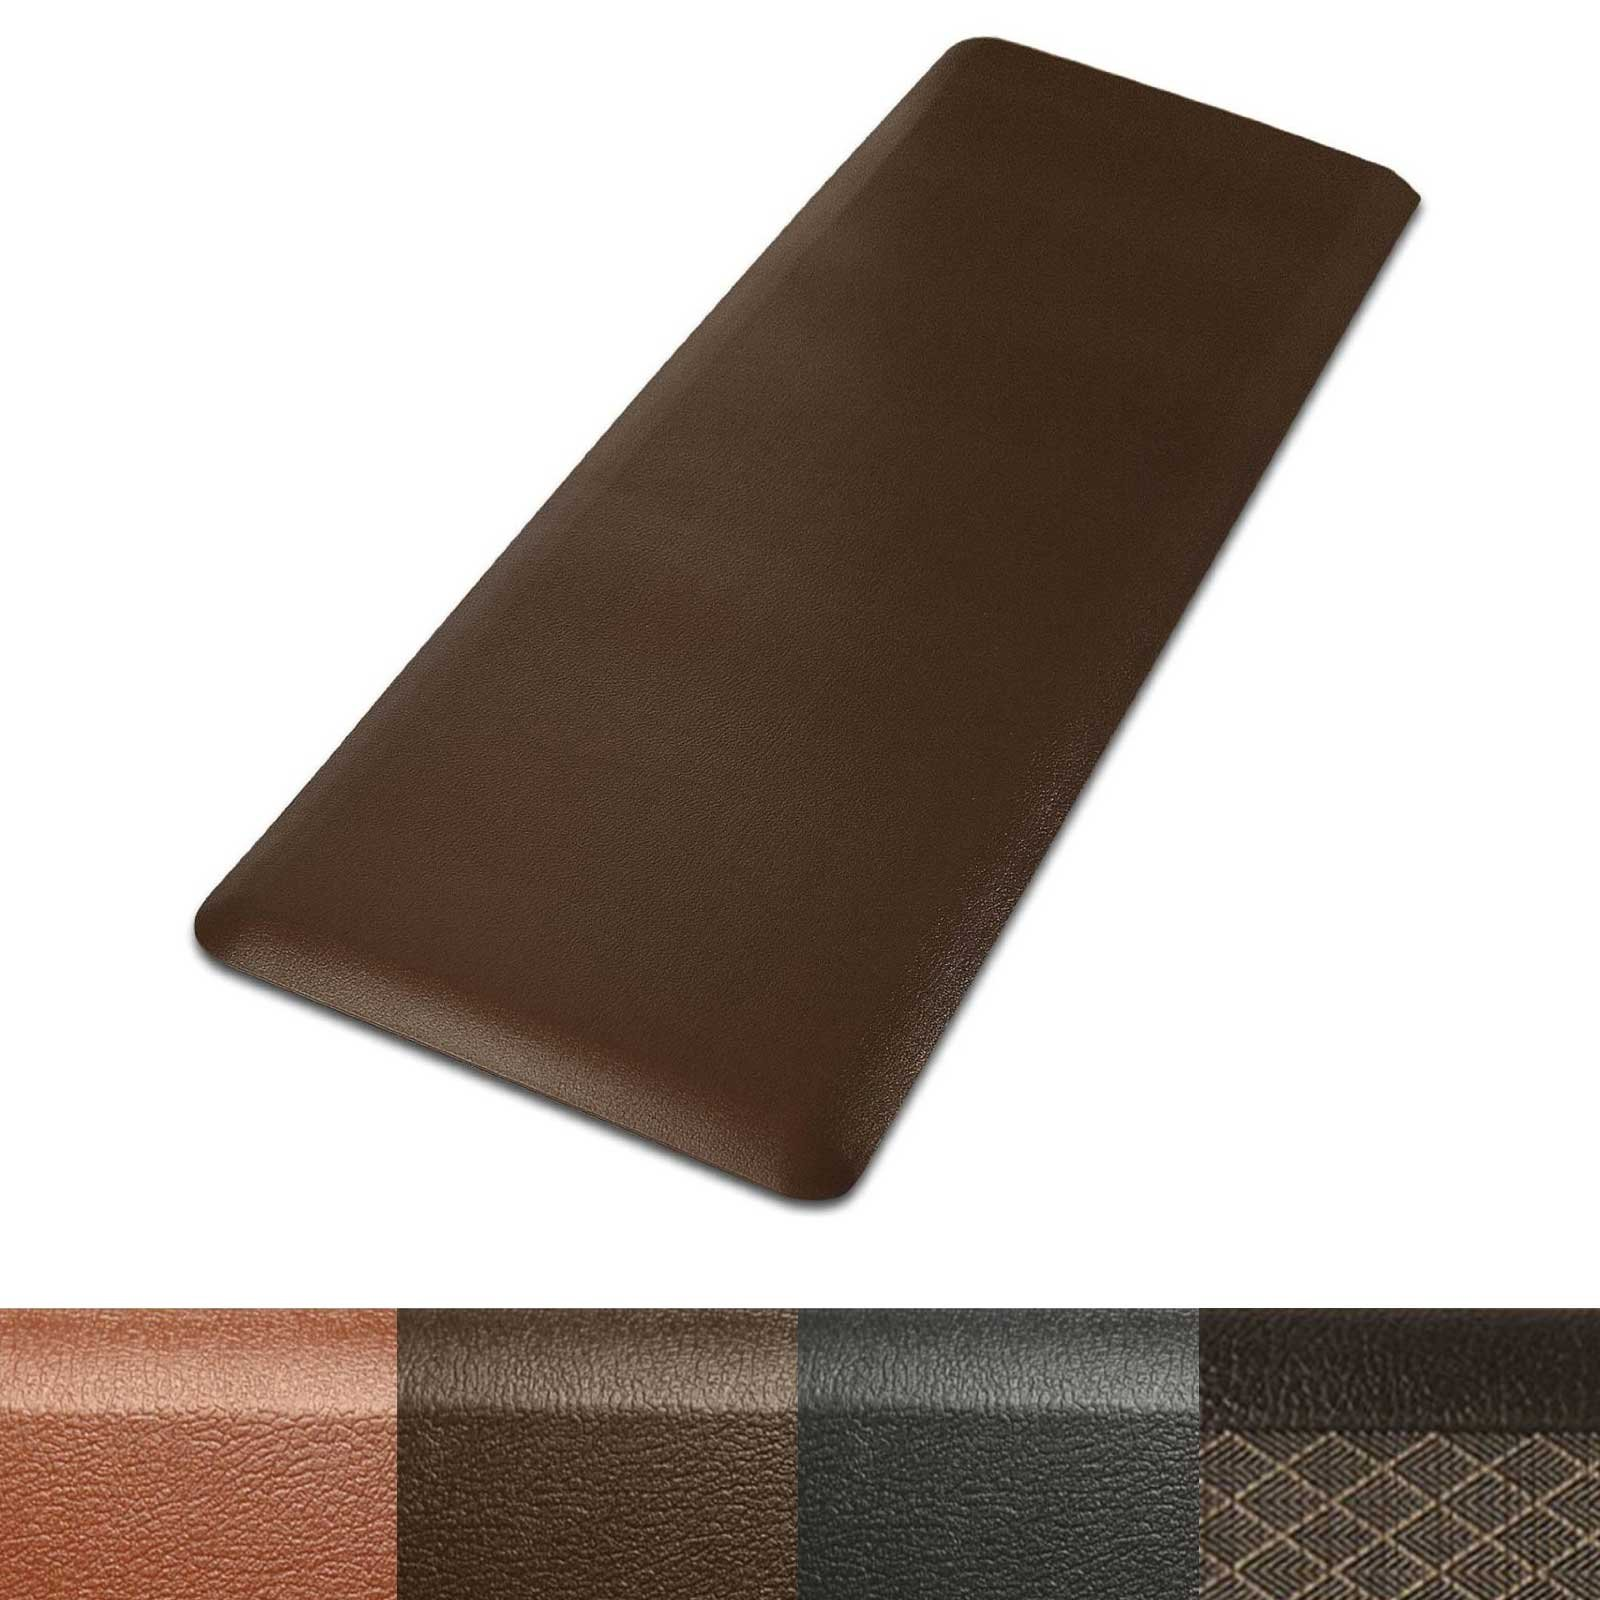 Kitchen Mat | Anti Fatigue Mat, 3/4 Thick | Ergonomically Engineered, Non-Slip, Waterproof | 20''x72'' - Brown by casa pura